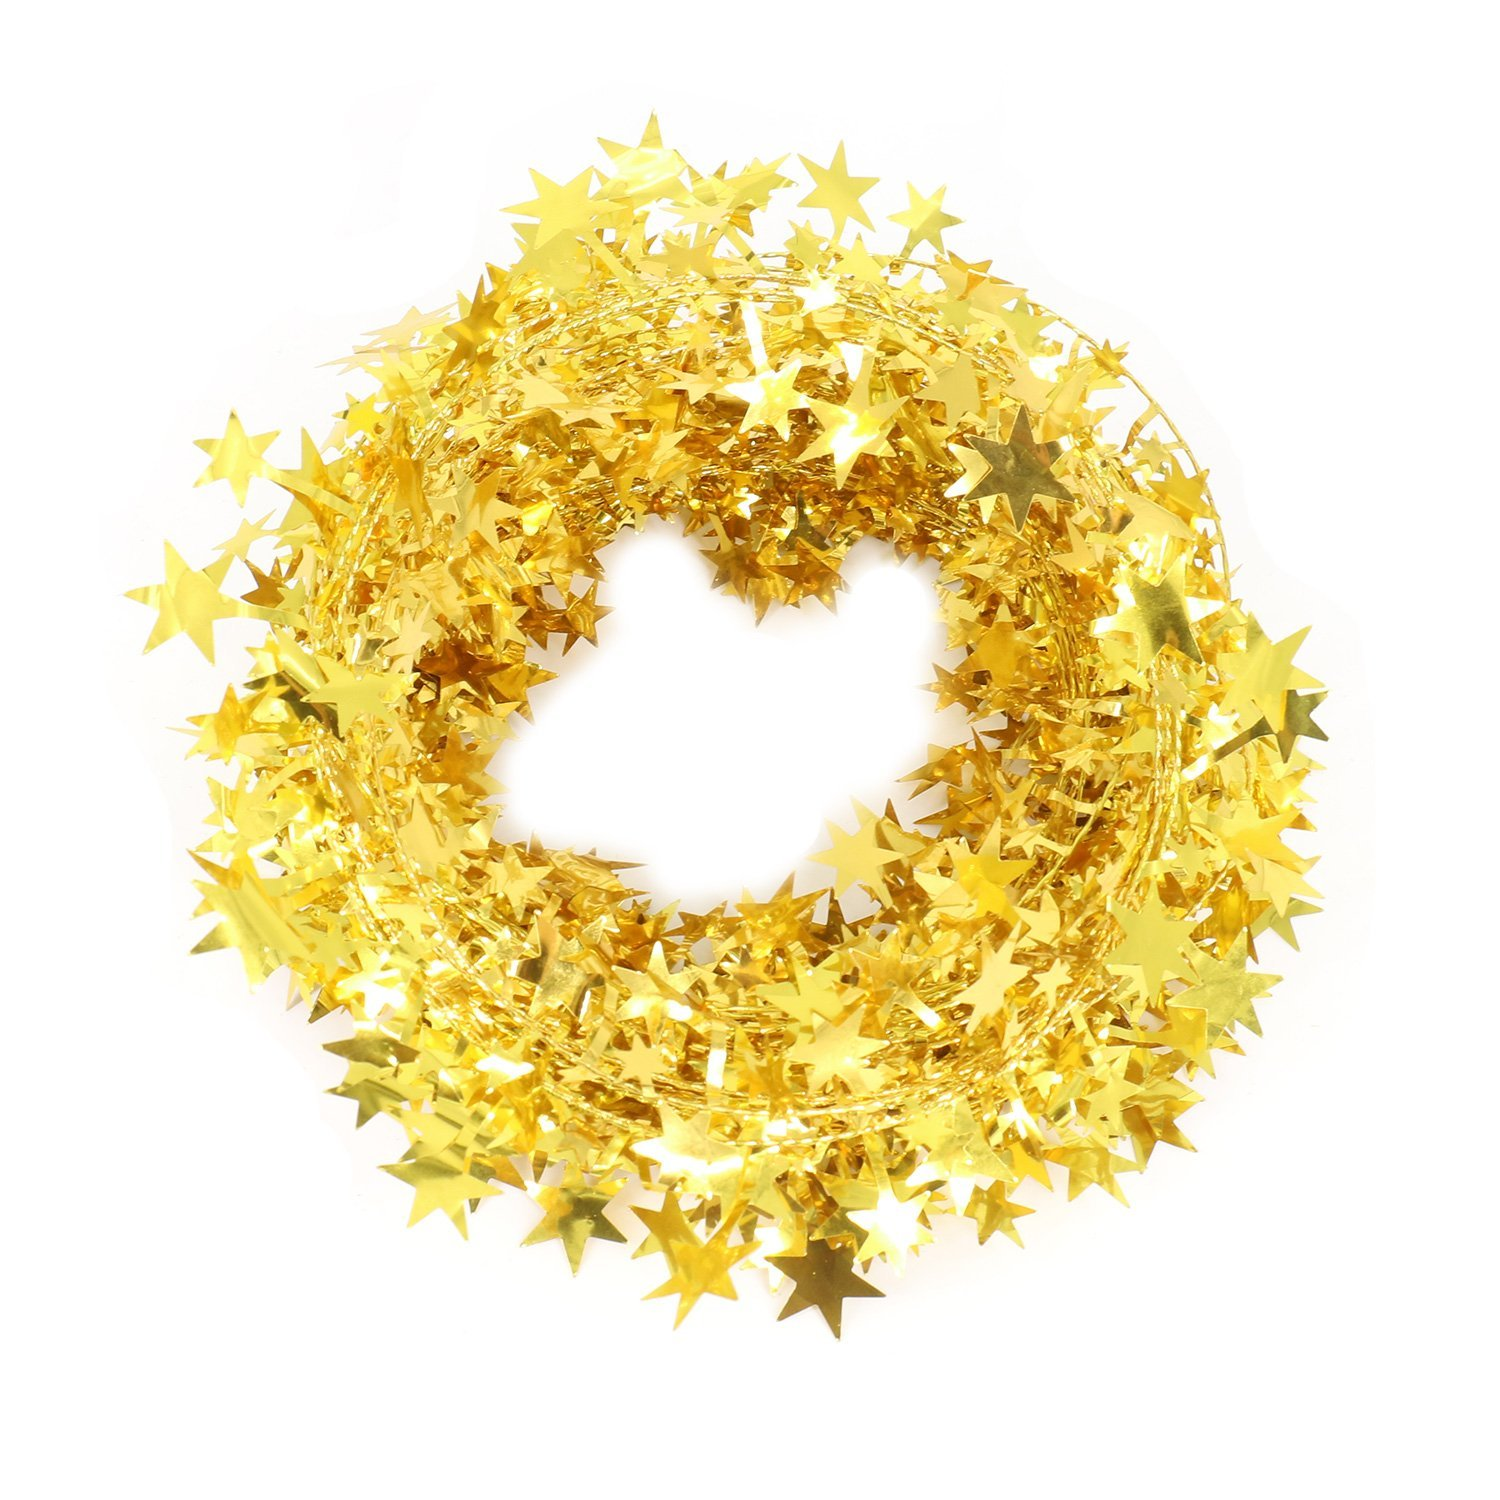 Amazon.com: Christmas Decorations Gold Star Wire Garland - 25 Ft X 2 ...